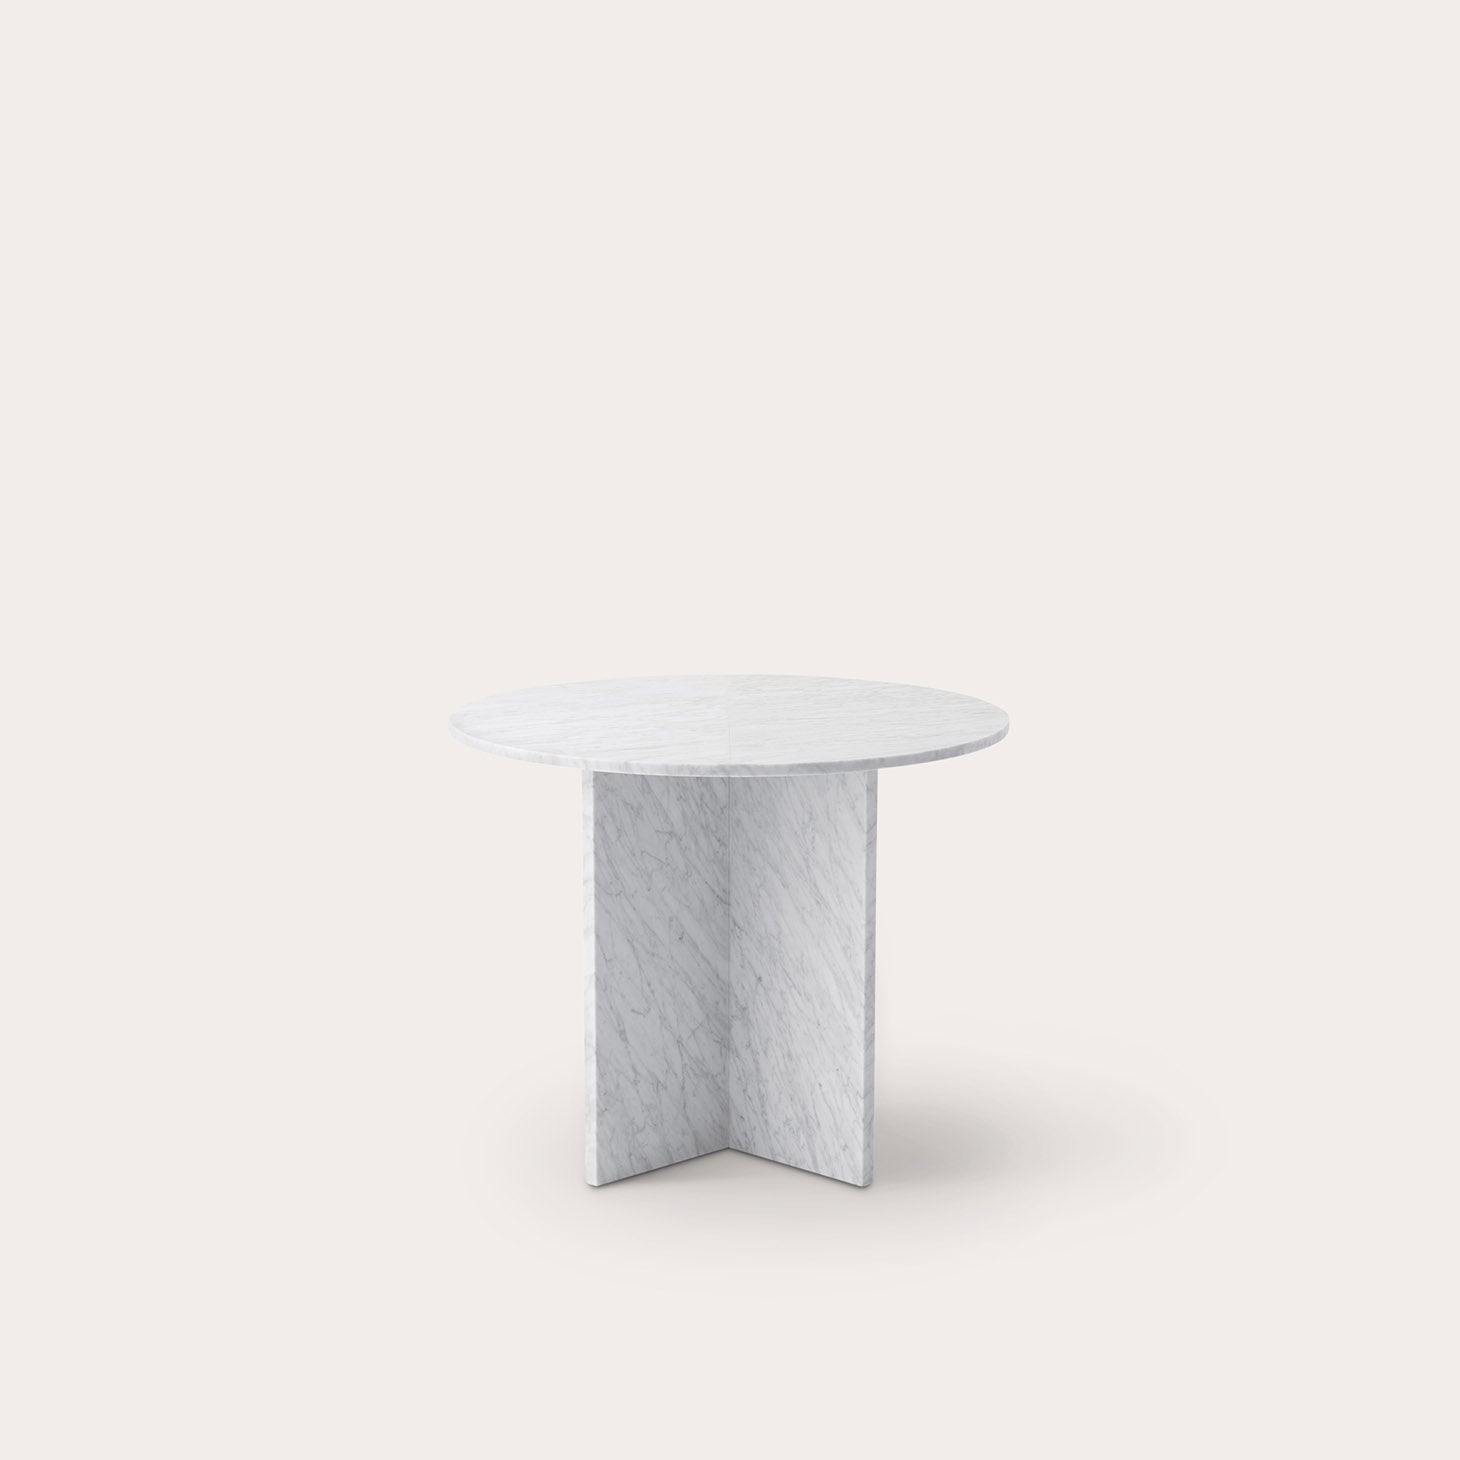 Split A Tables Nendo Designer Furniture Sku: 625-230-10058